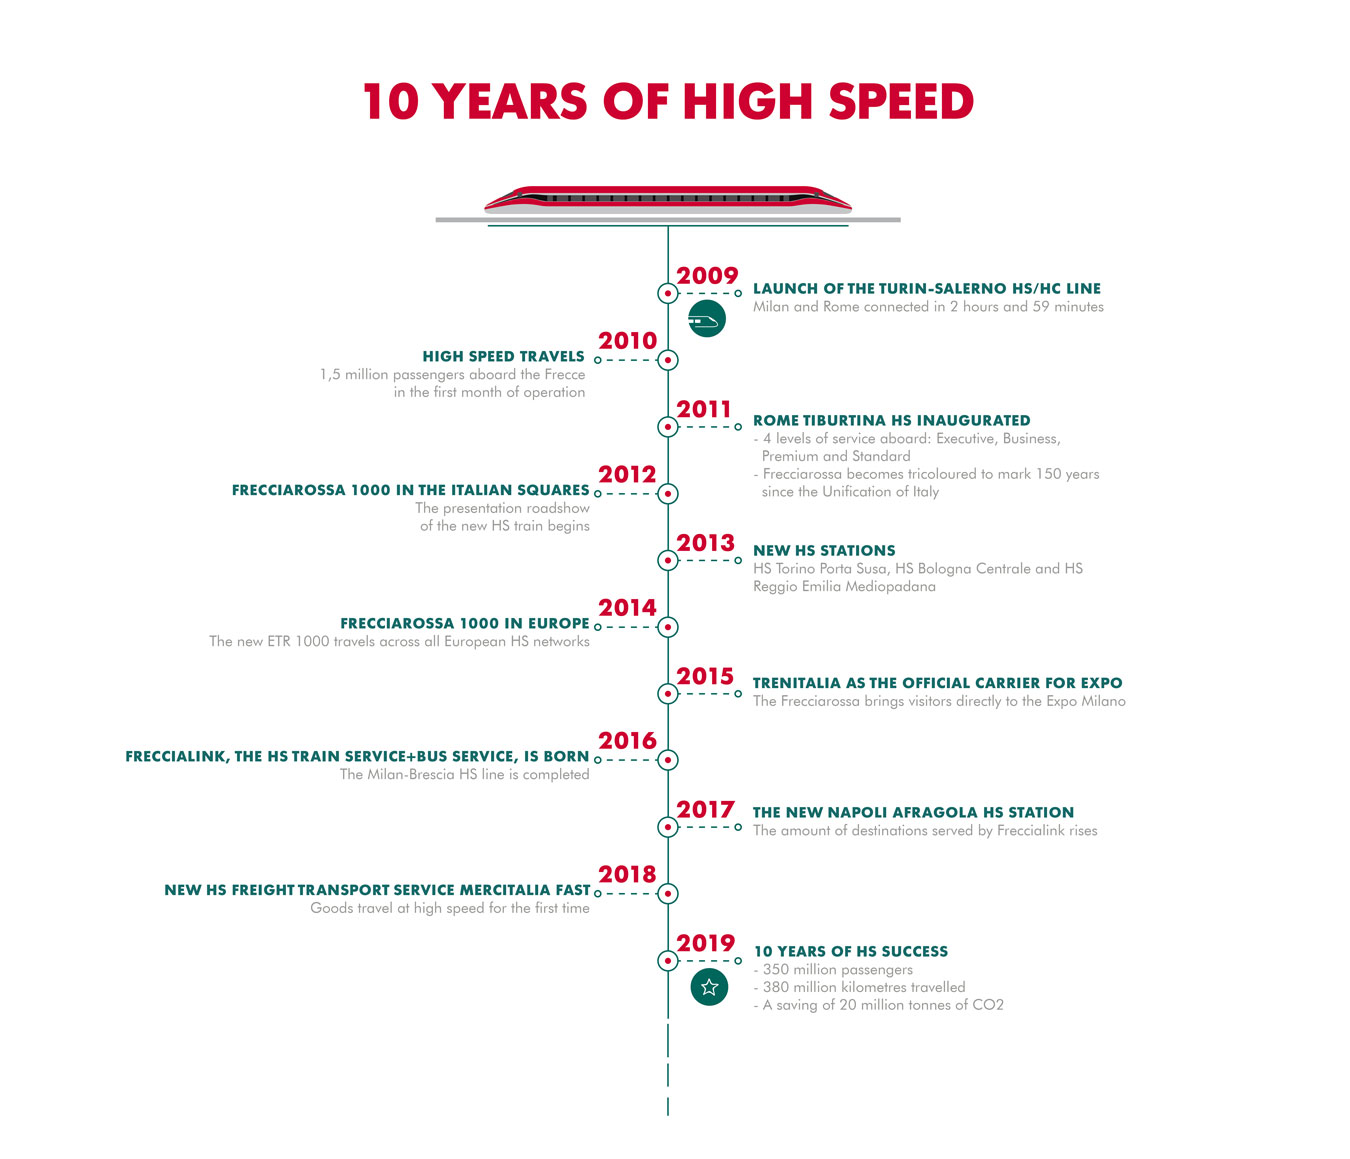 Timeline 10 years of High Speed